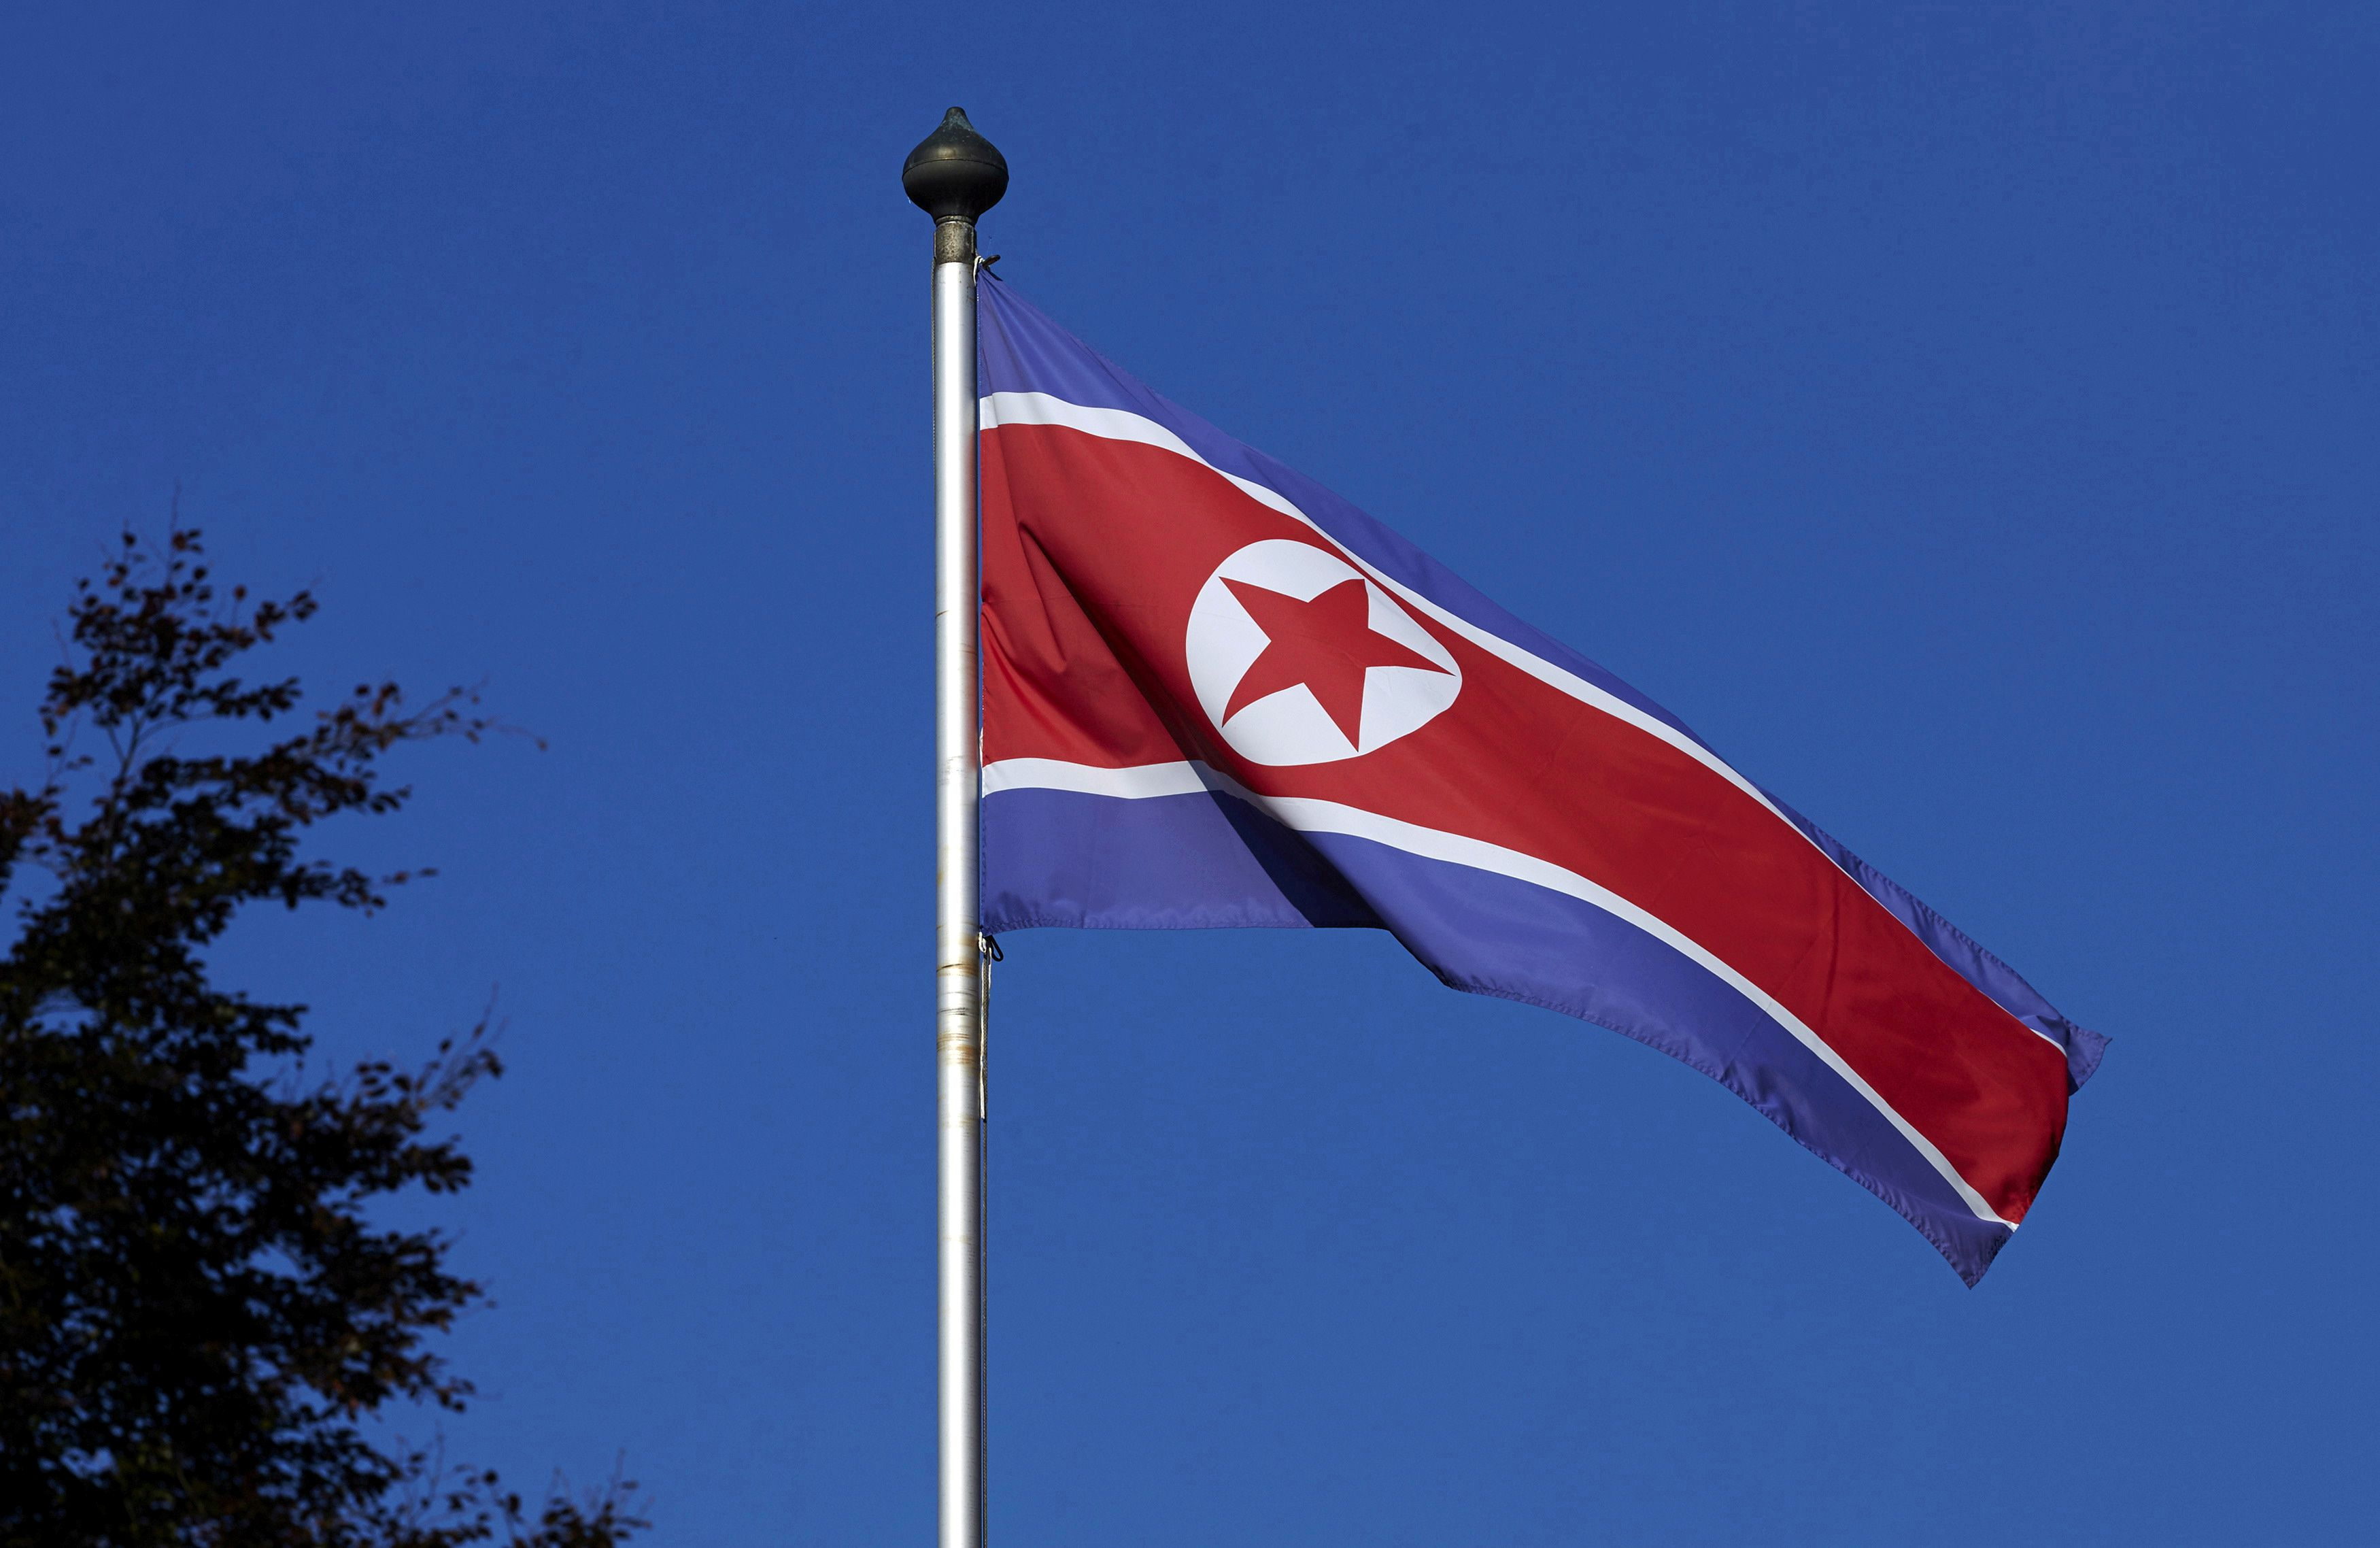 North Korea issues warning over planned U.S.-South Korean military drills